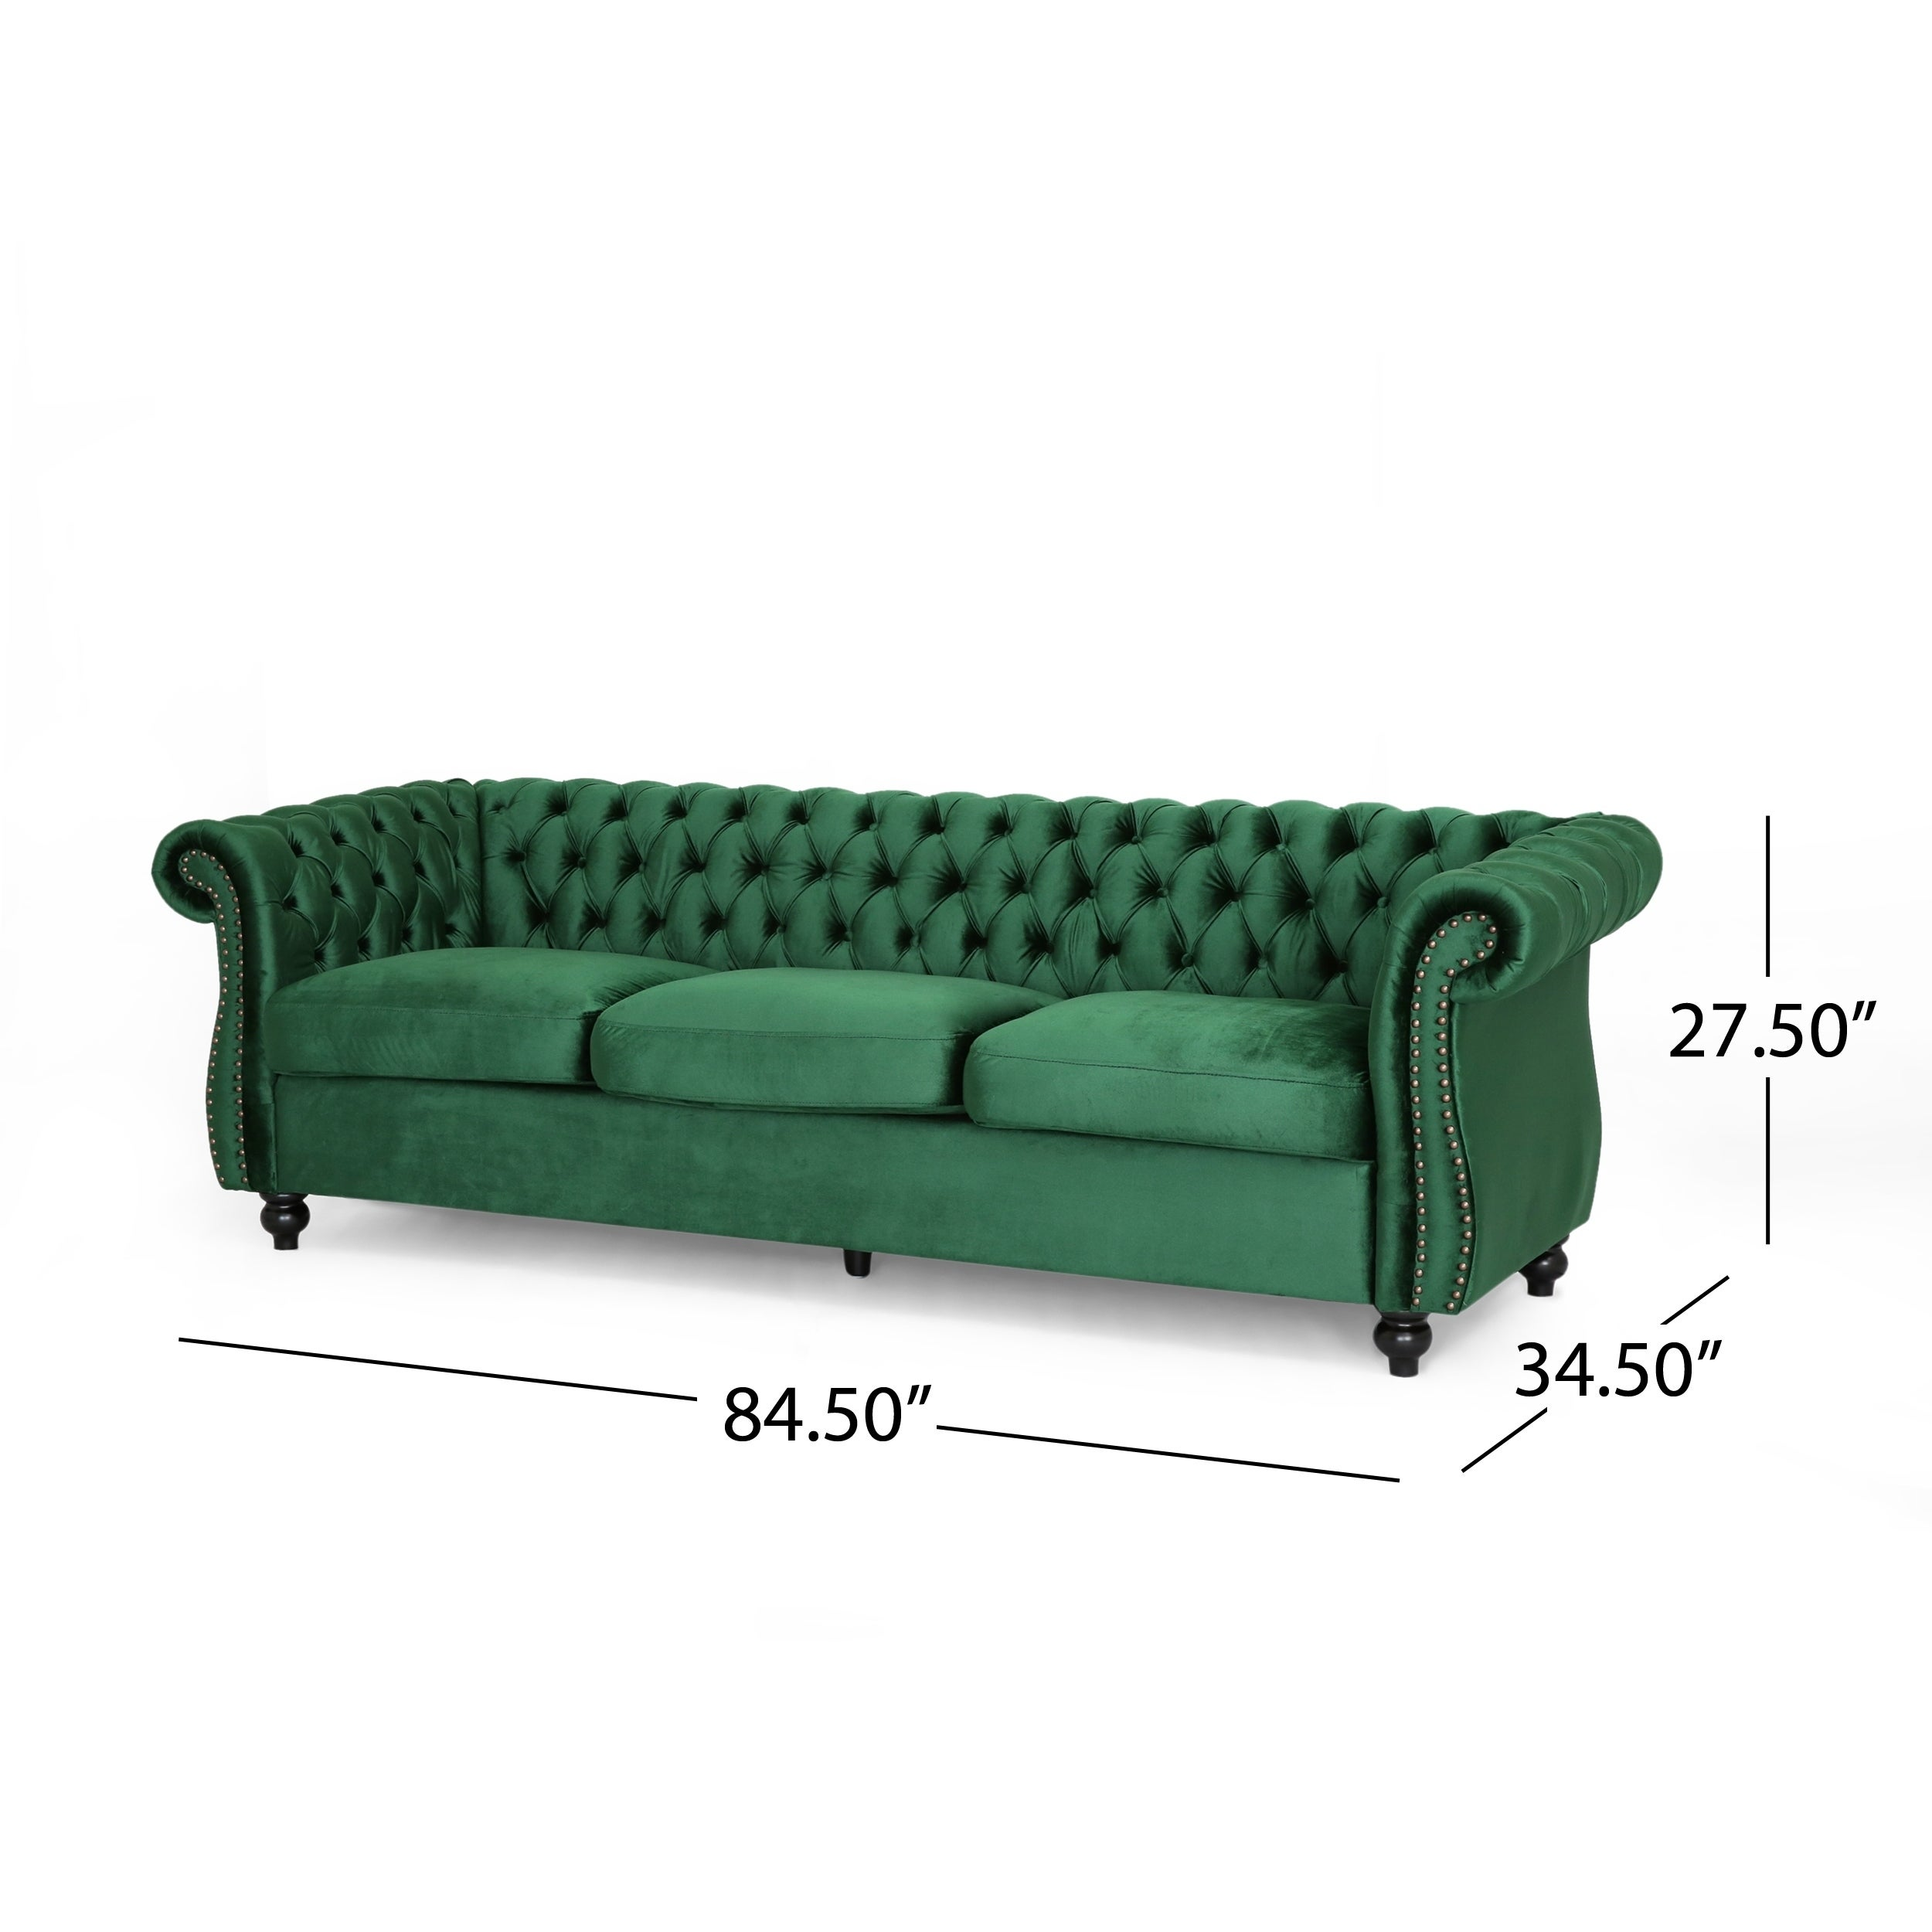 Super Somerville Chesterfield Tufted Jewel Toned Velvet Sofa With Scroll Arms By Christopher Knight Home Onthecornerstone Fun Painted Chair Ideas Images Onthecornerstoneorg